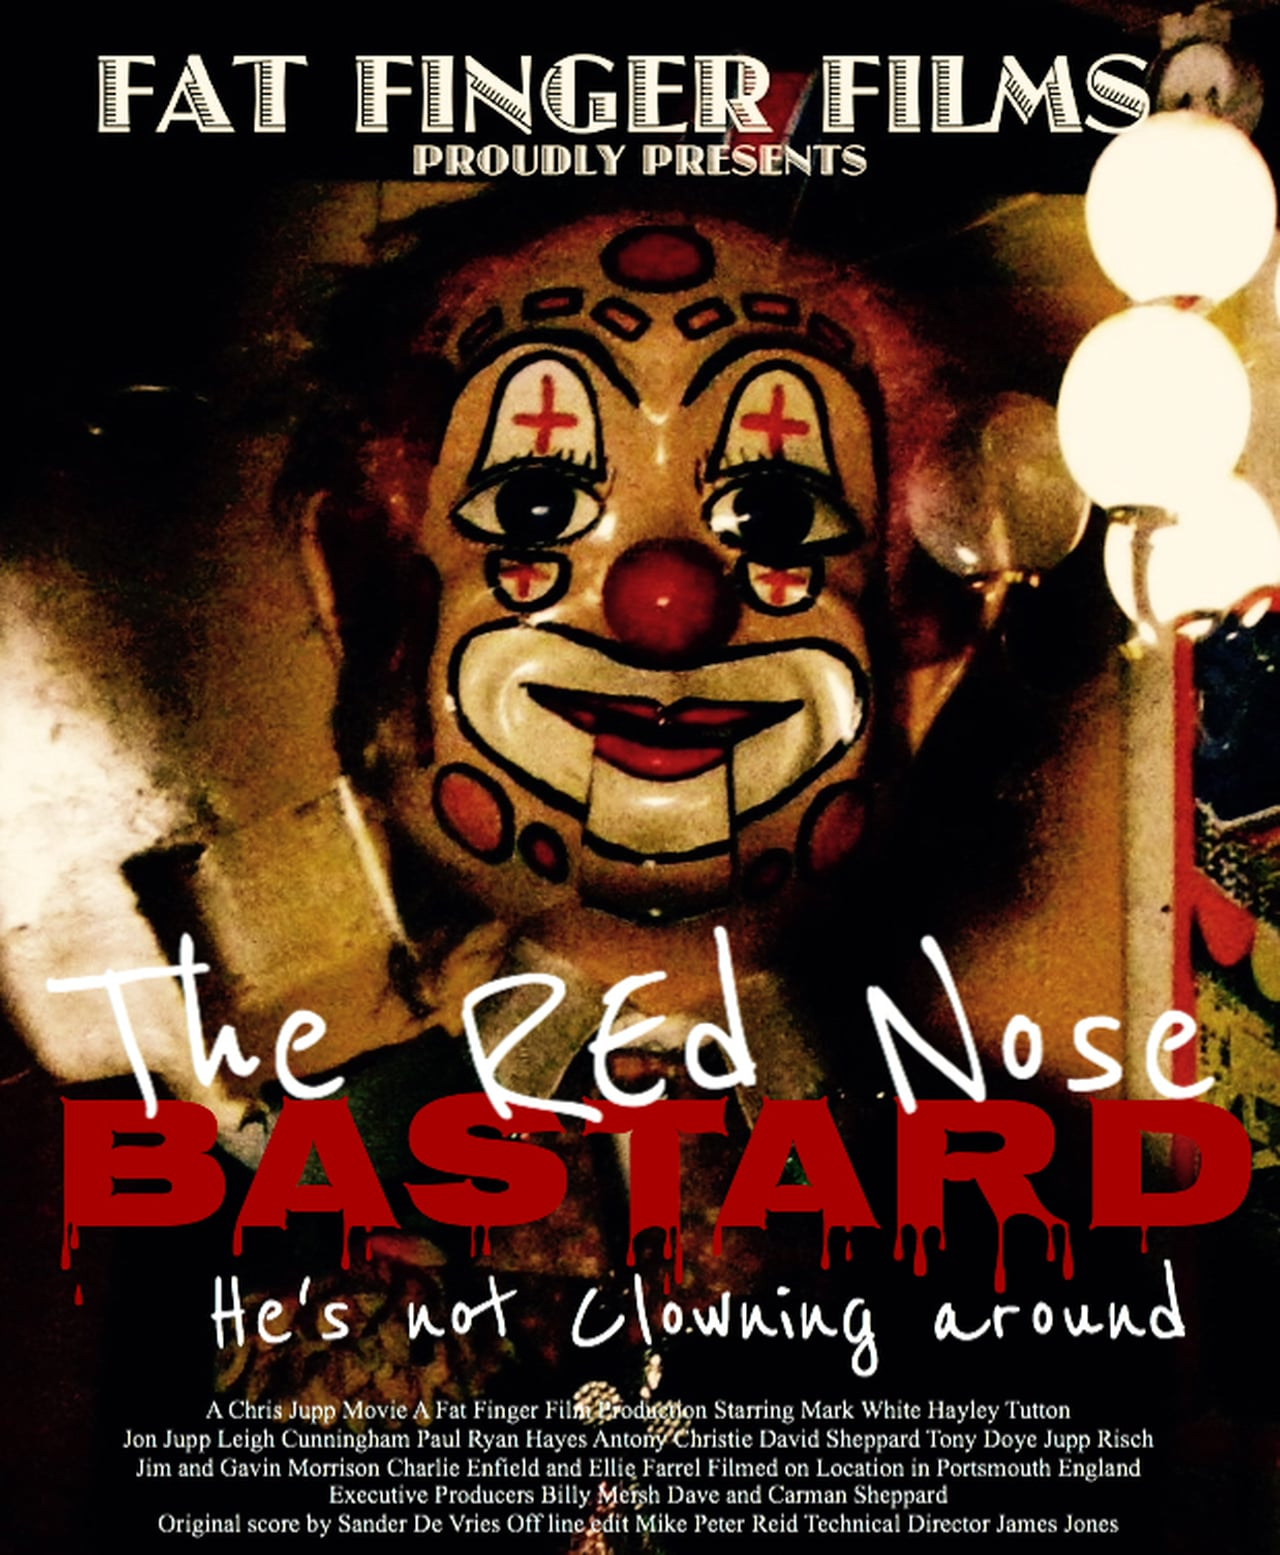 Watch The Red Nose Bastard on our Free Roku Channel